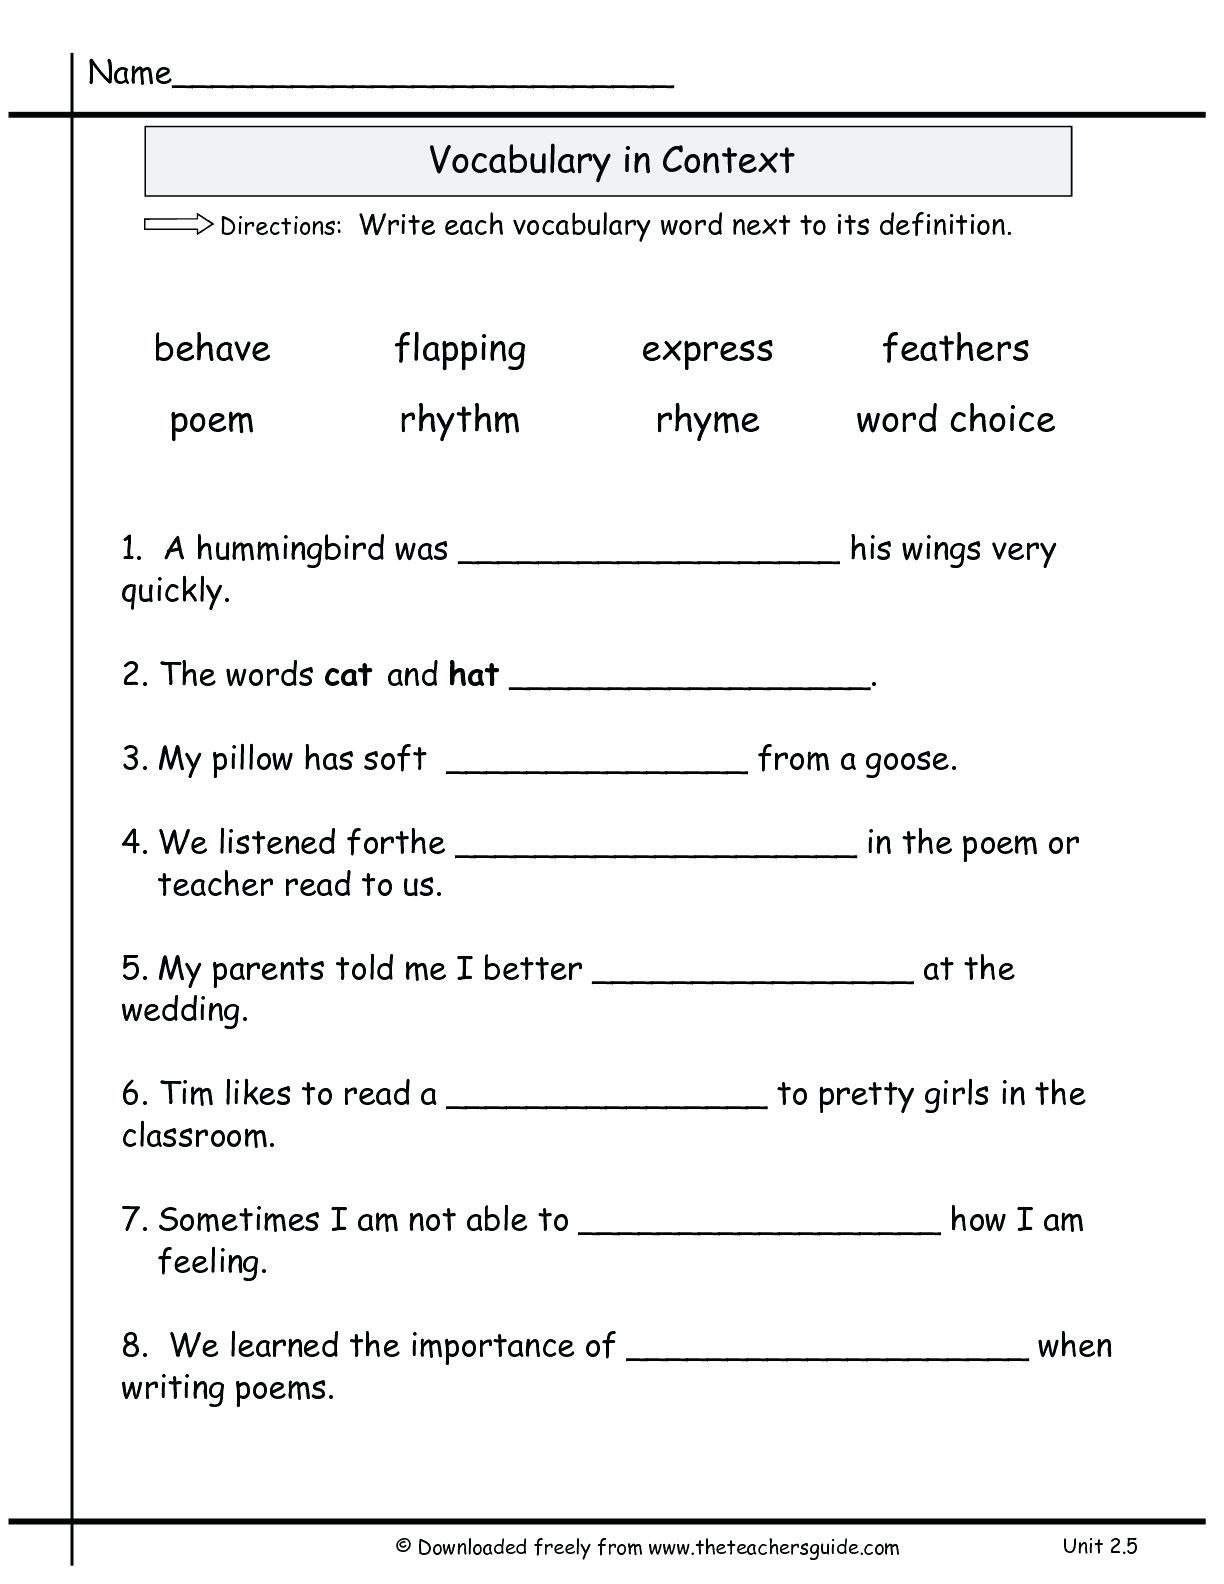 Officialmemorable 5th Grade English Worksheets